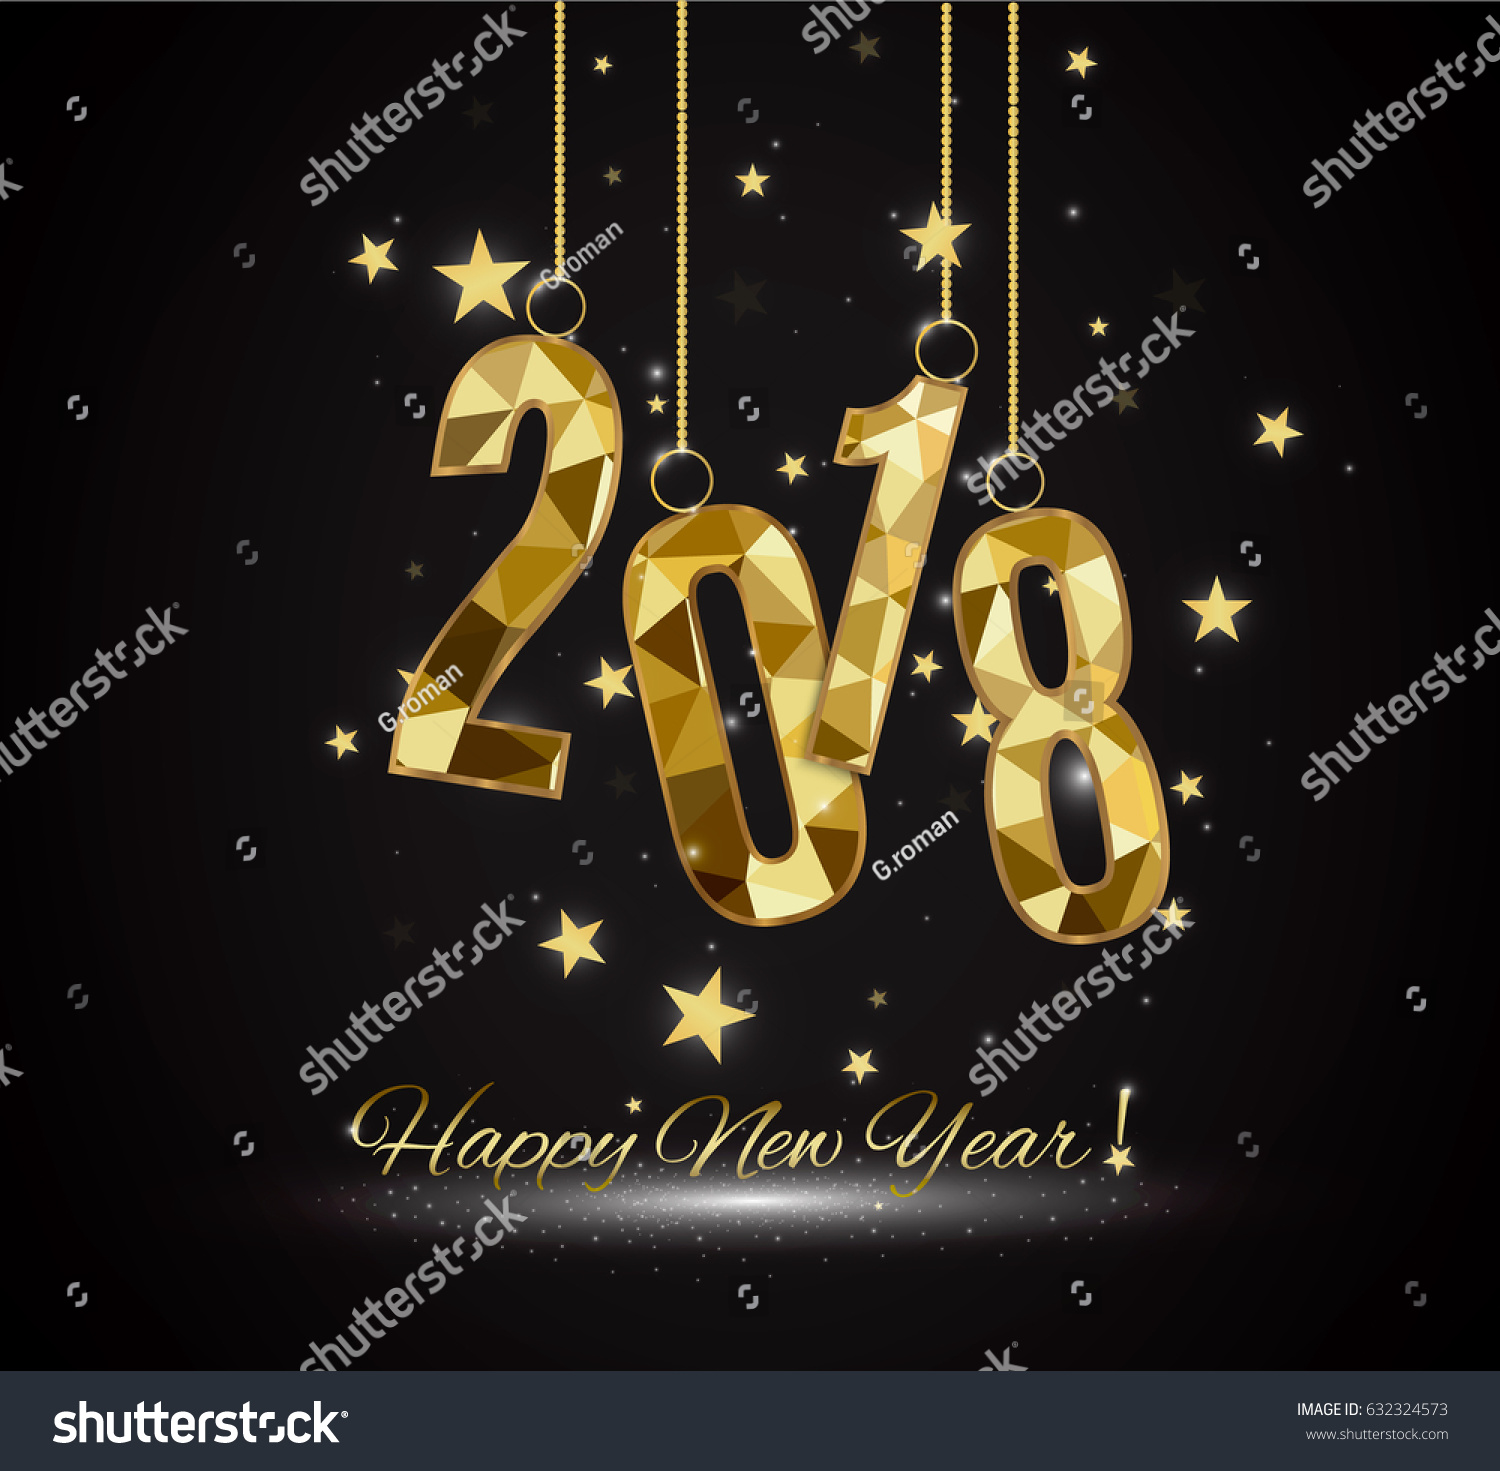 Happy New Year Merry Christmas 2018 Stock Vector 632324573 ...